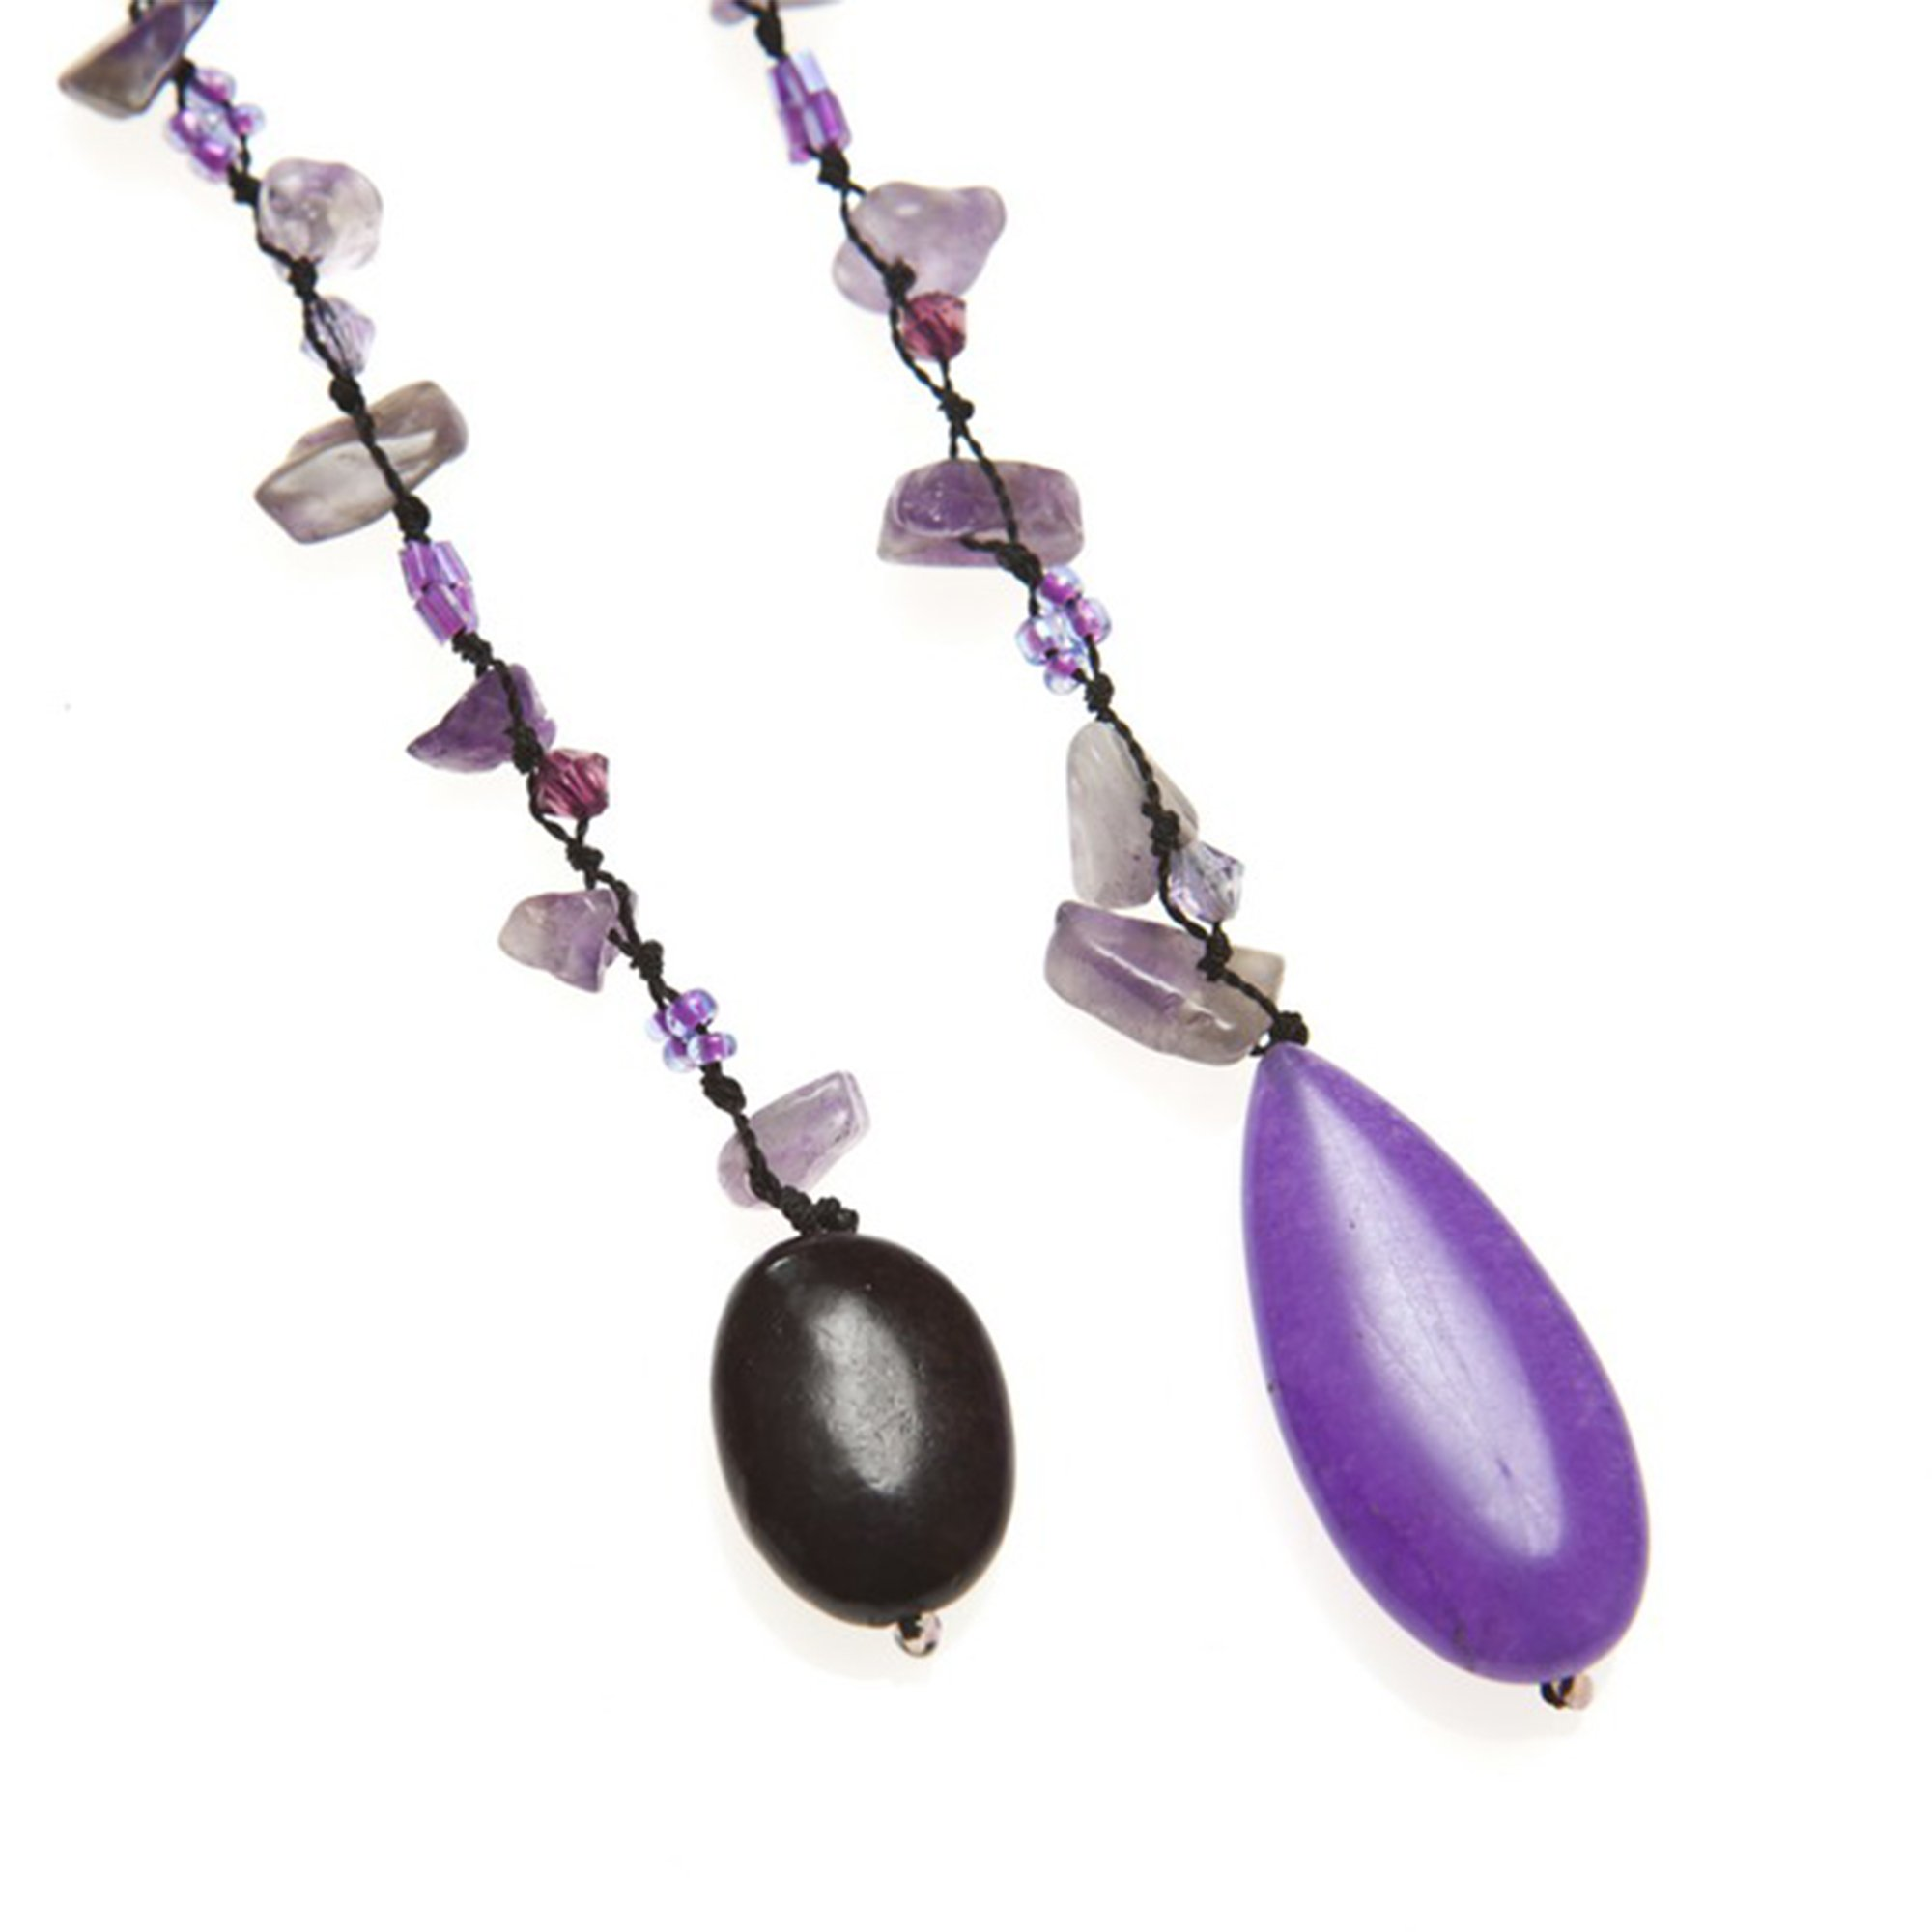 Sparkling Aura Simulated Amethyst & Reconstructed Agate Lariat Necklace by AeraVida (Image #1)